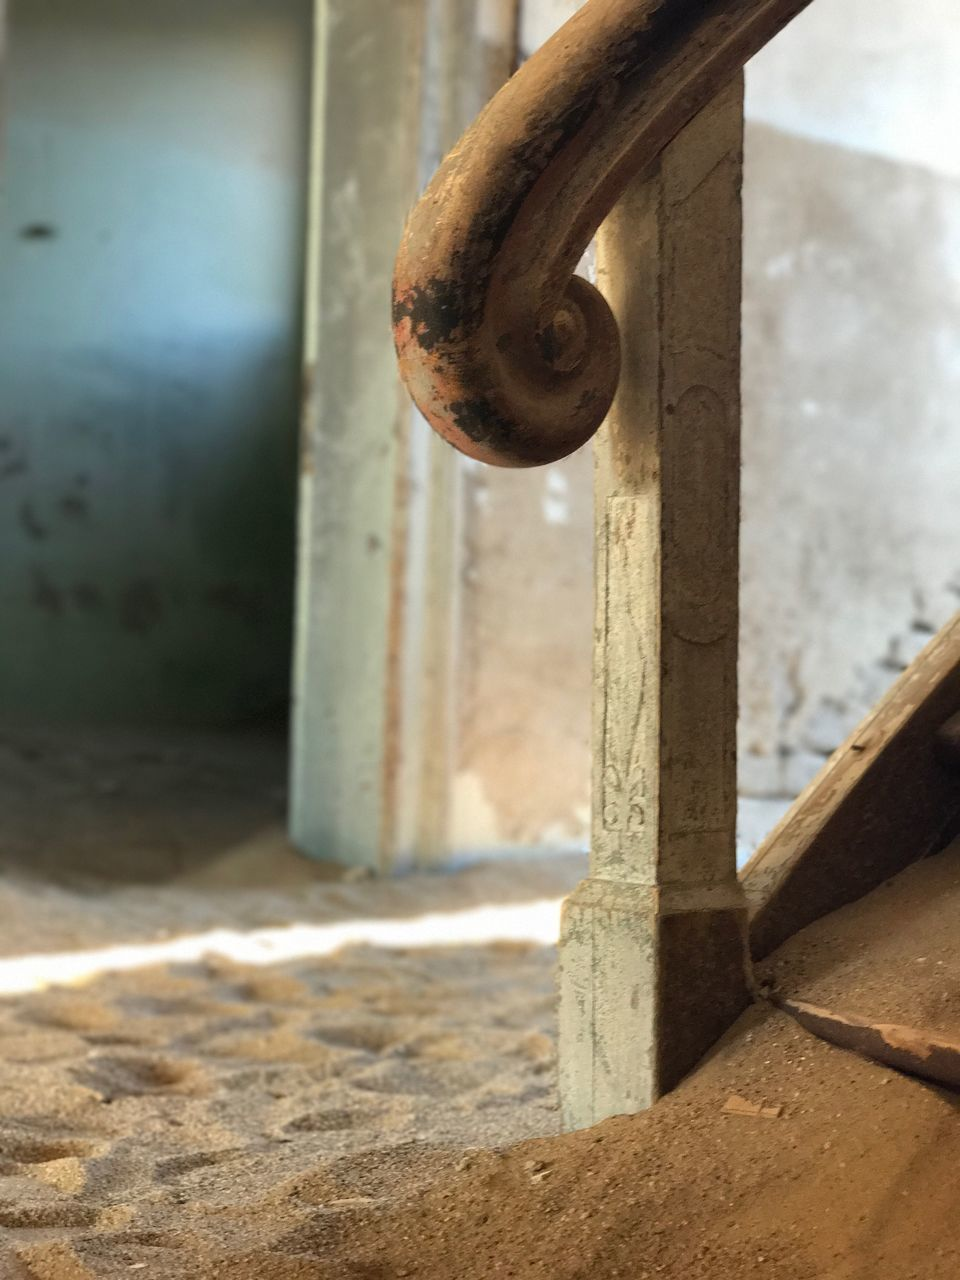 metal, close-up, no people, focus on foreground, day, rusty, outdoors, architecture